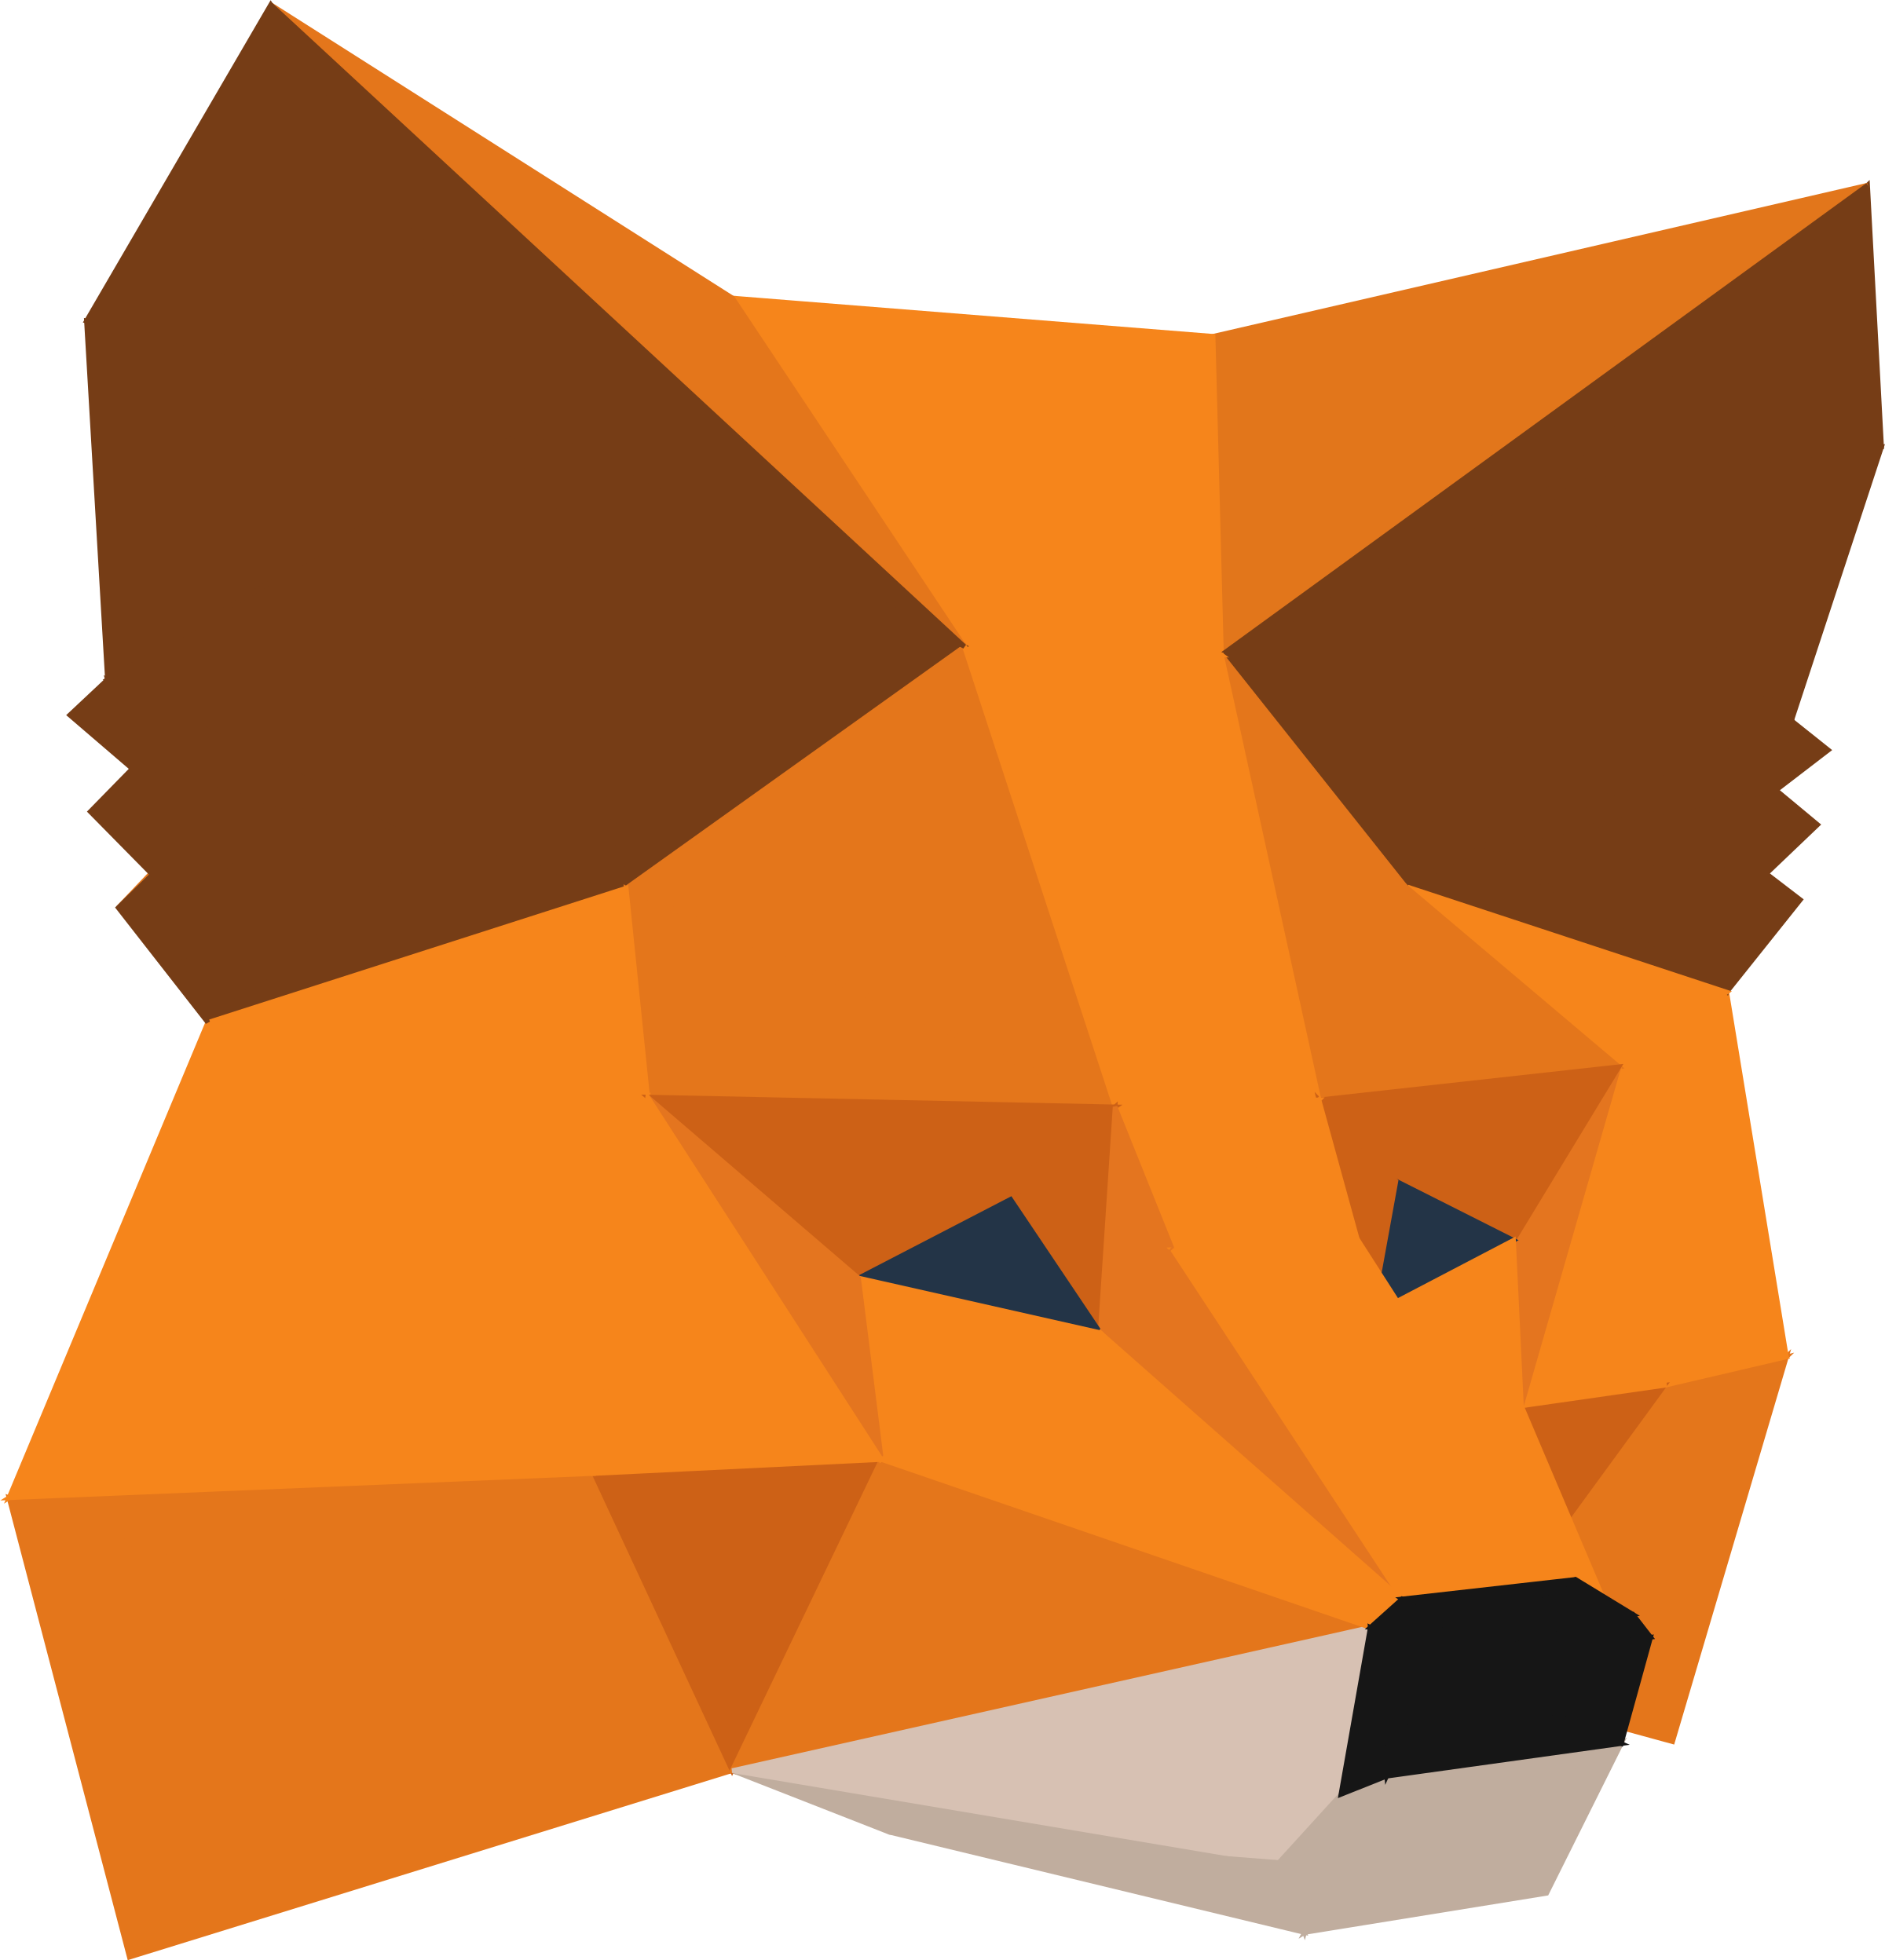 metamask-png-transparent-logo